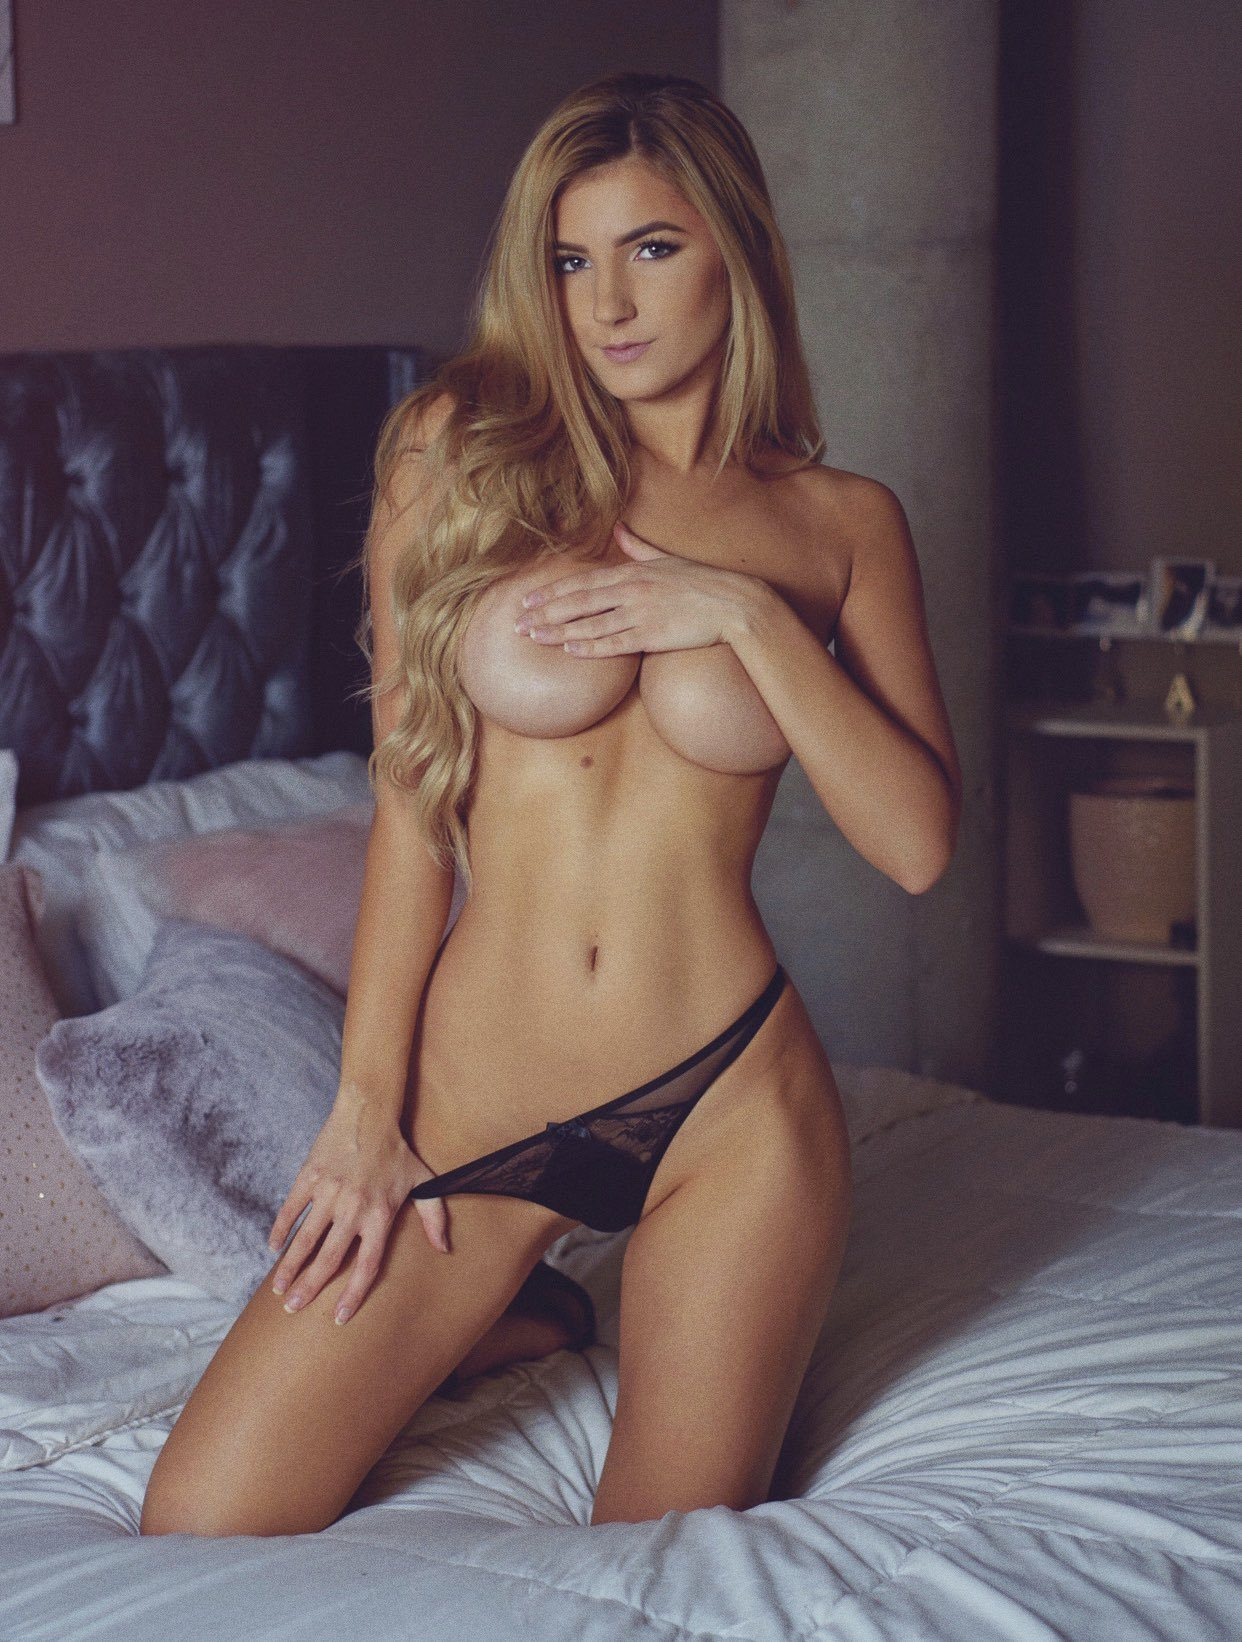 Picture tagged with: Blonde, Polina Aura - Polina Sitnova, Lingerie, Tummy